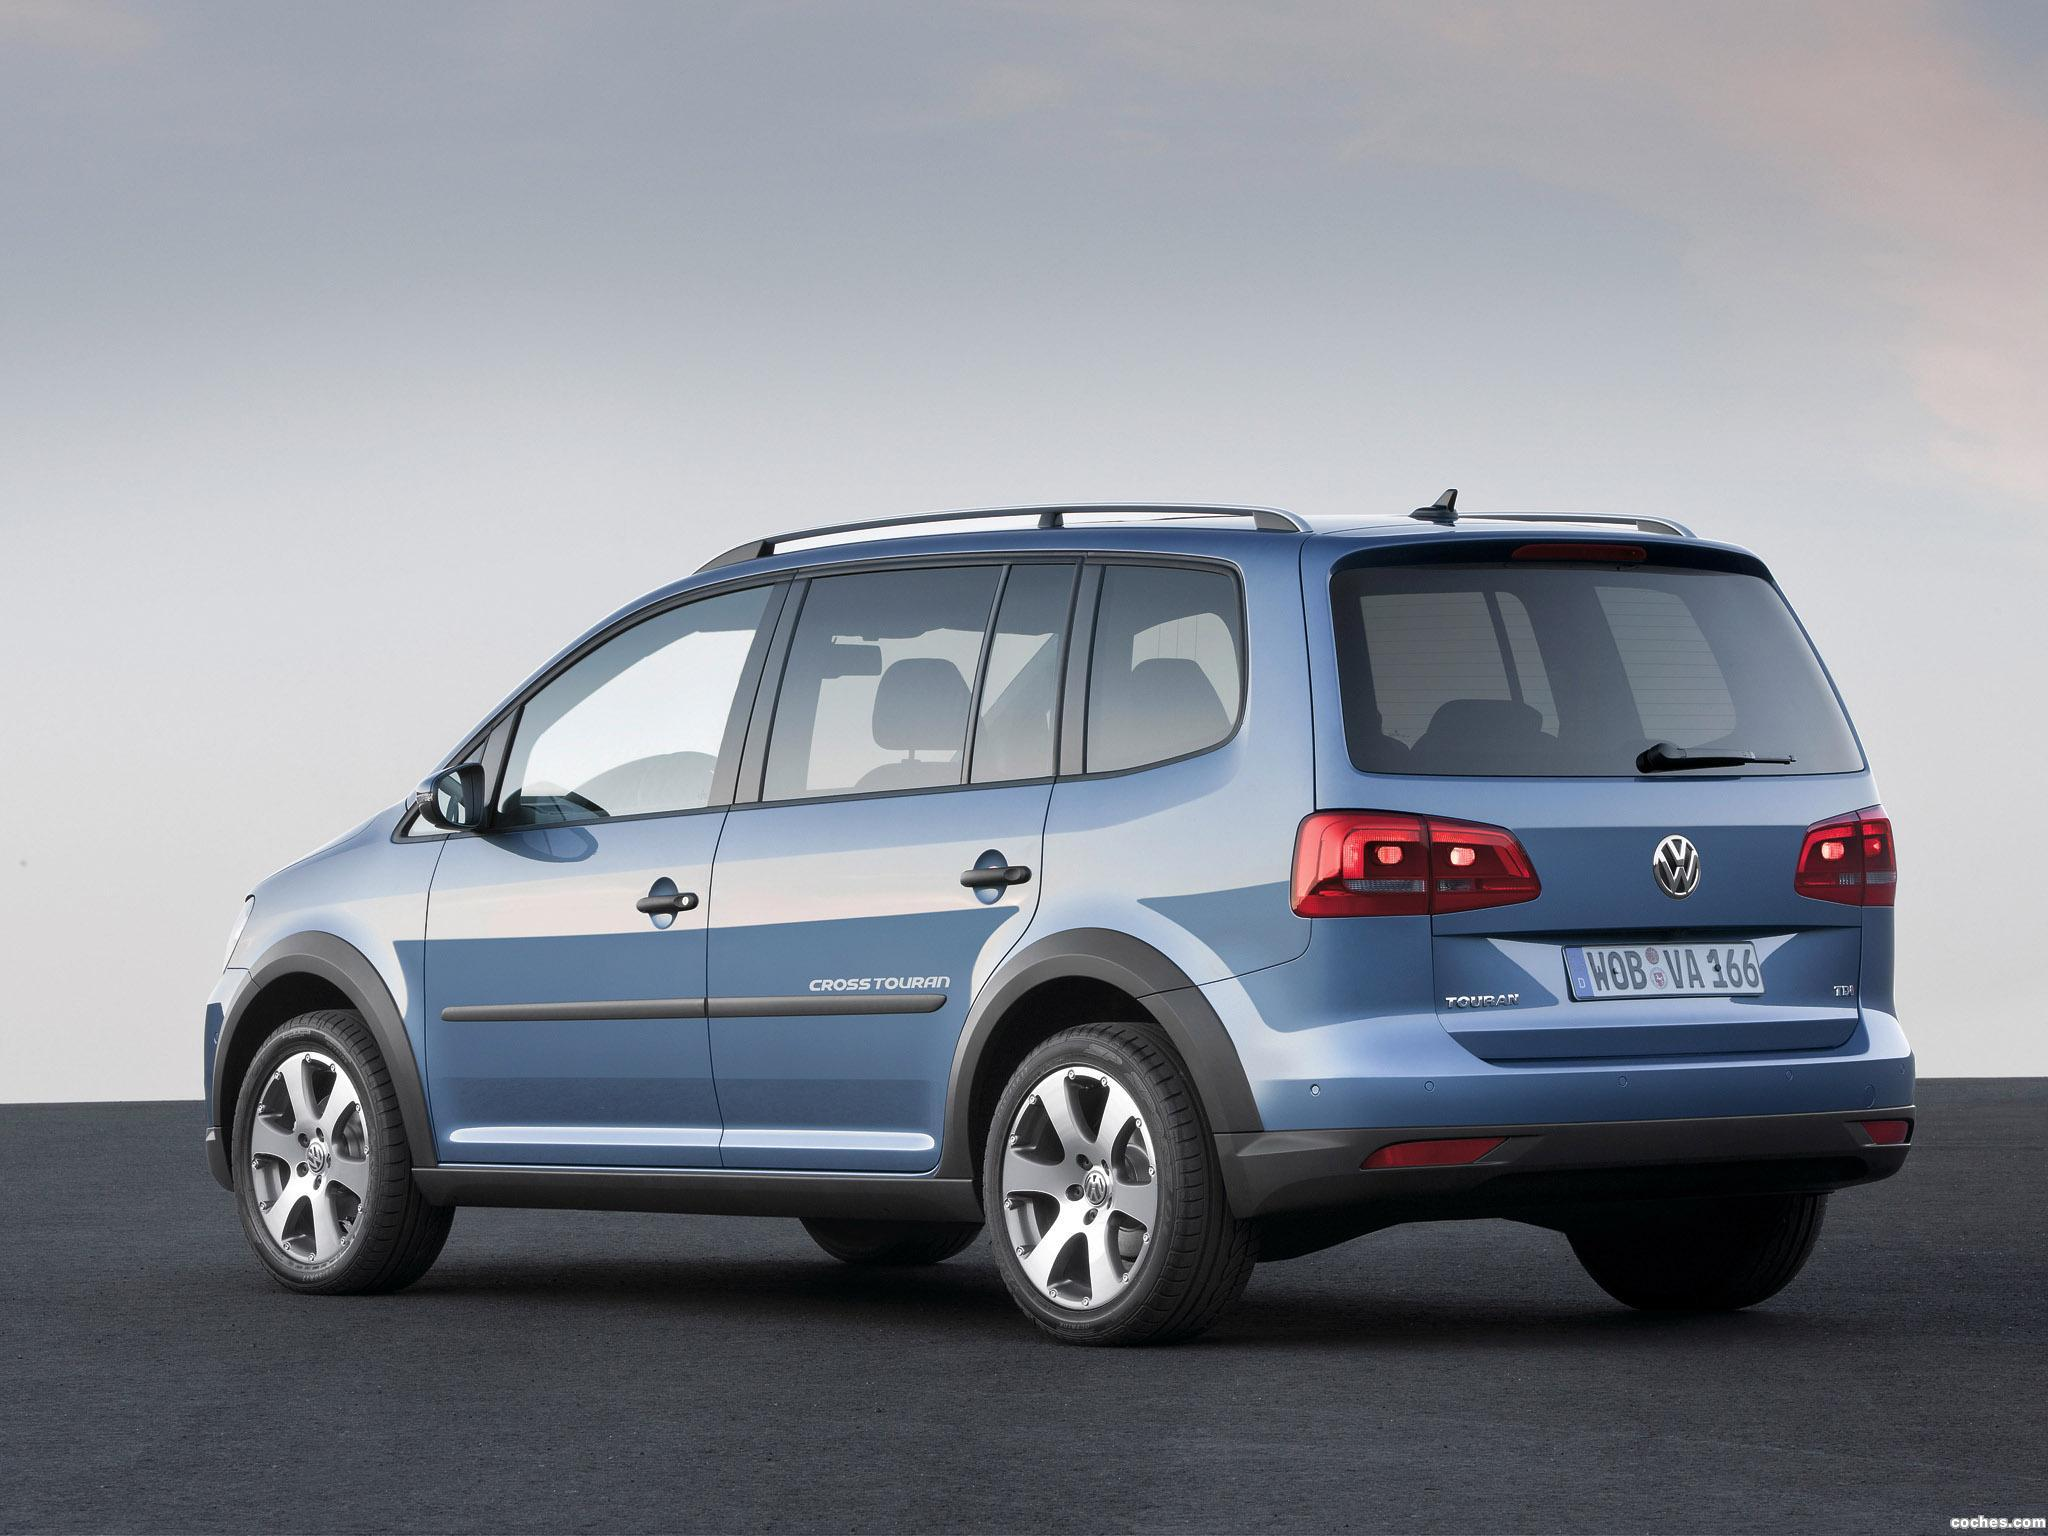 Foto 5 de Volkswagen Cross Touran 2010